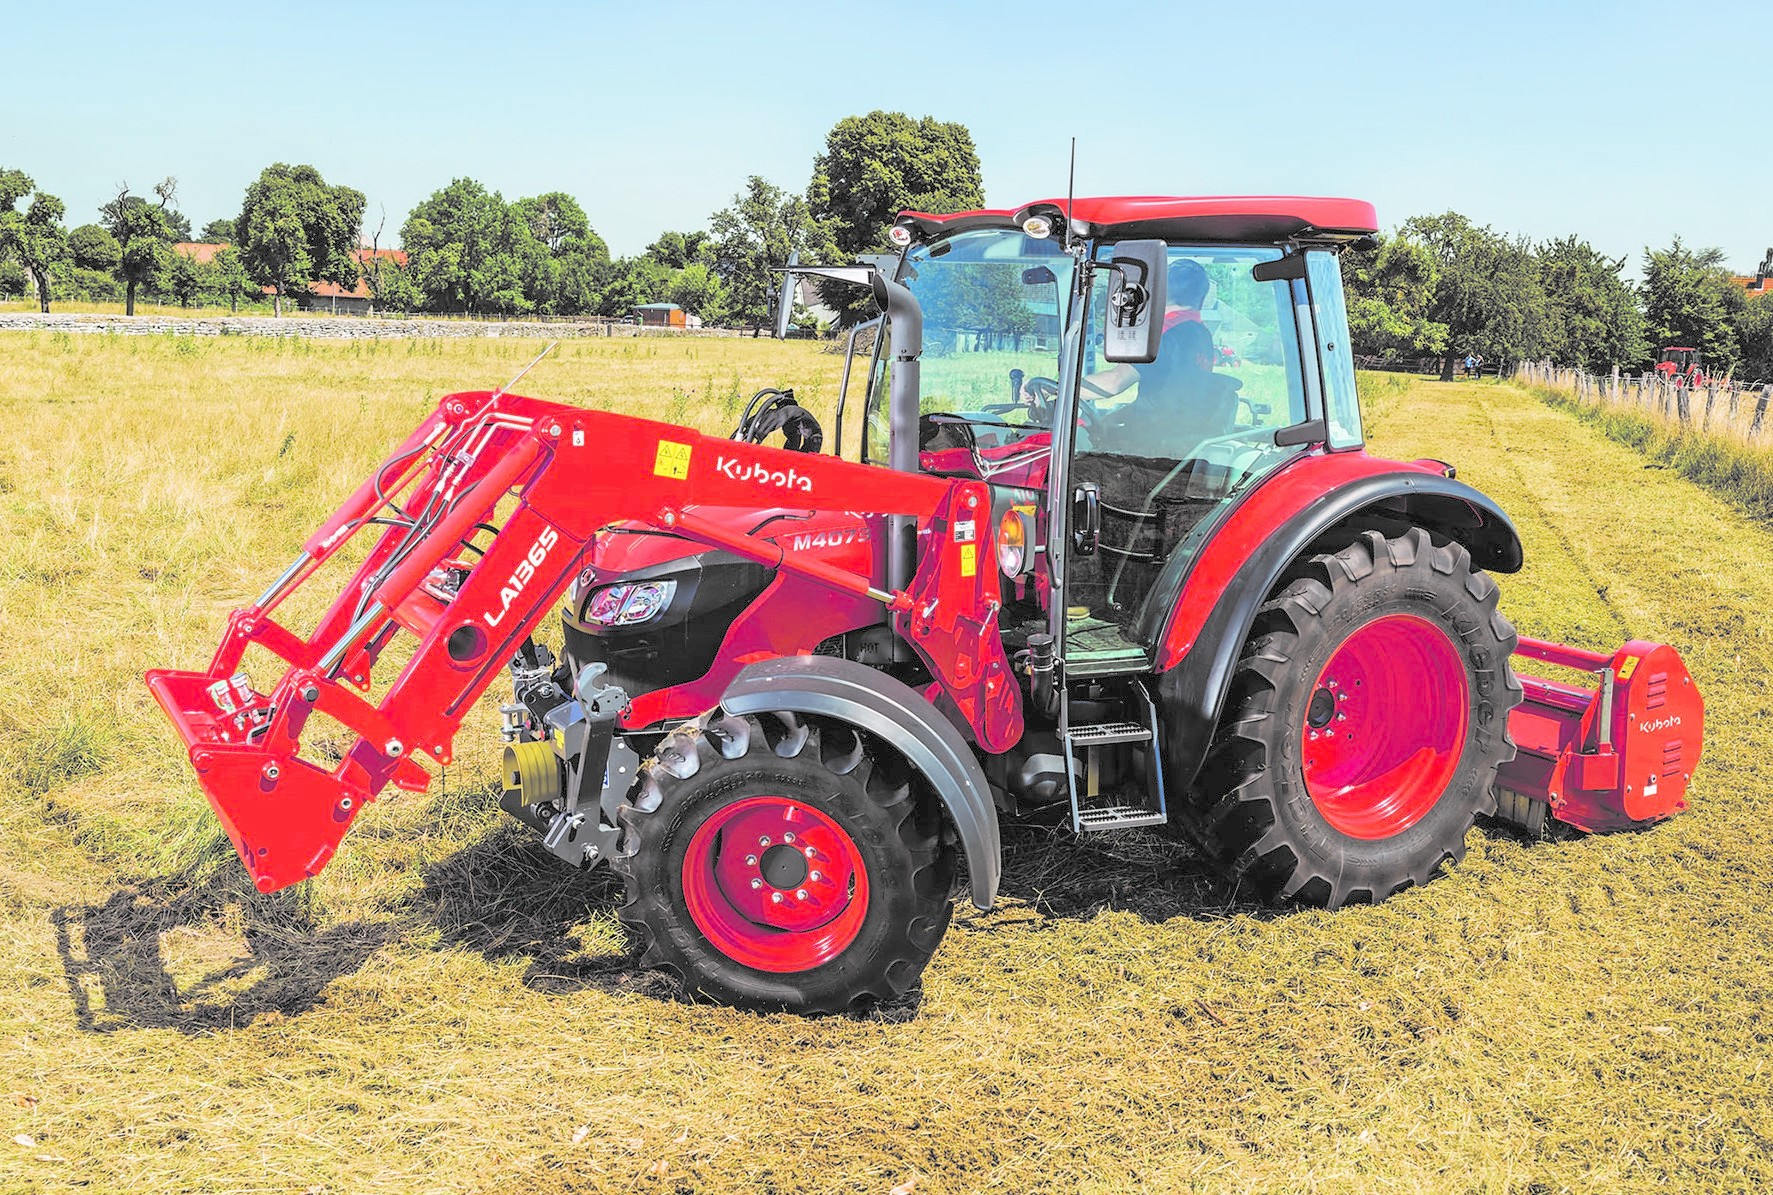 An ideal loader tractor, the Kubota M4073 can also handle light arable work